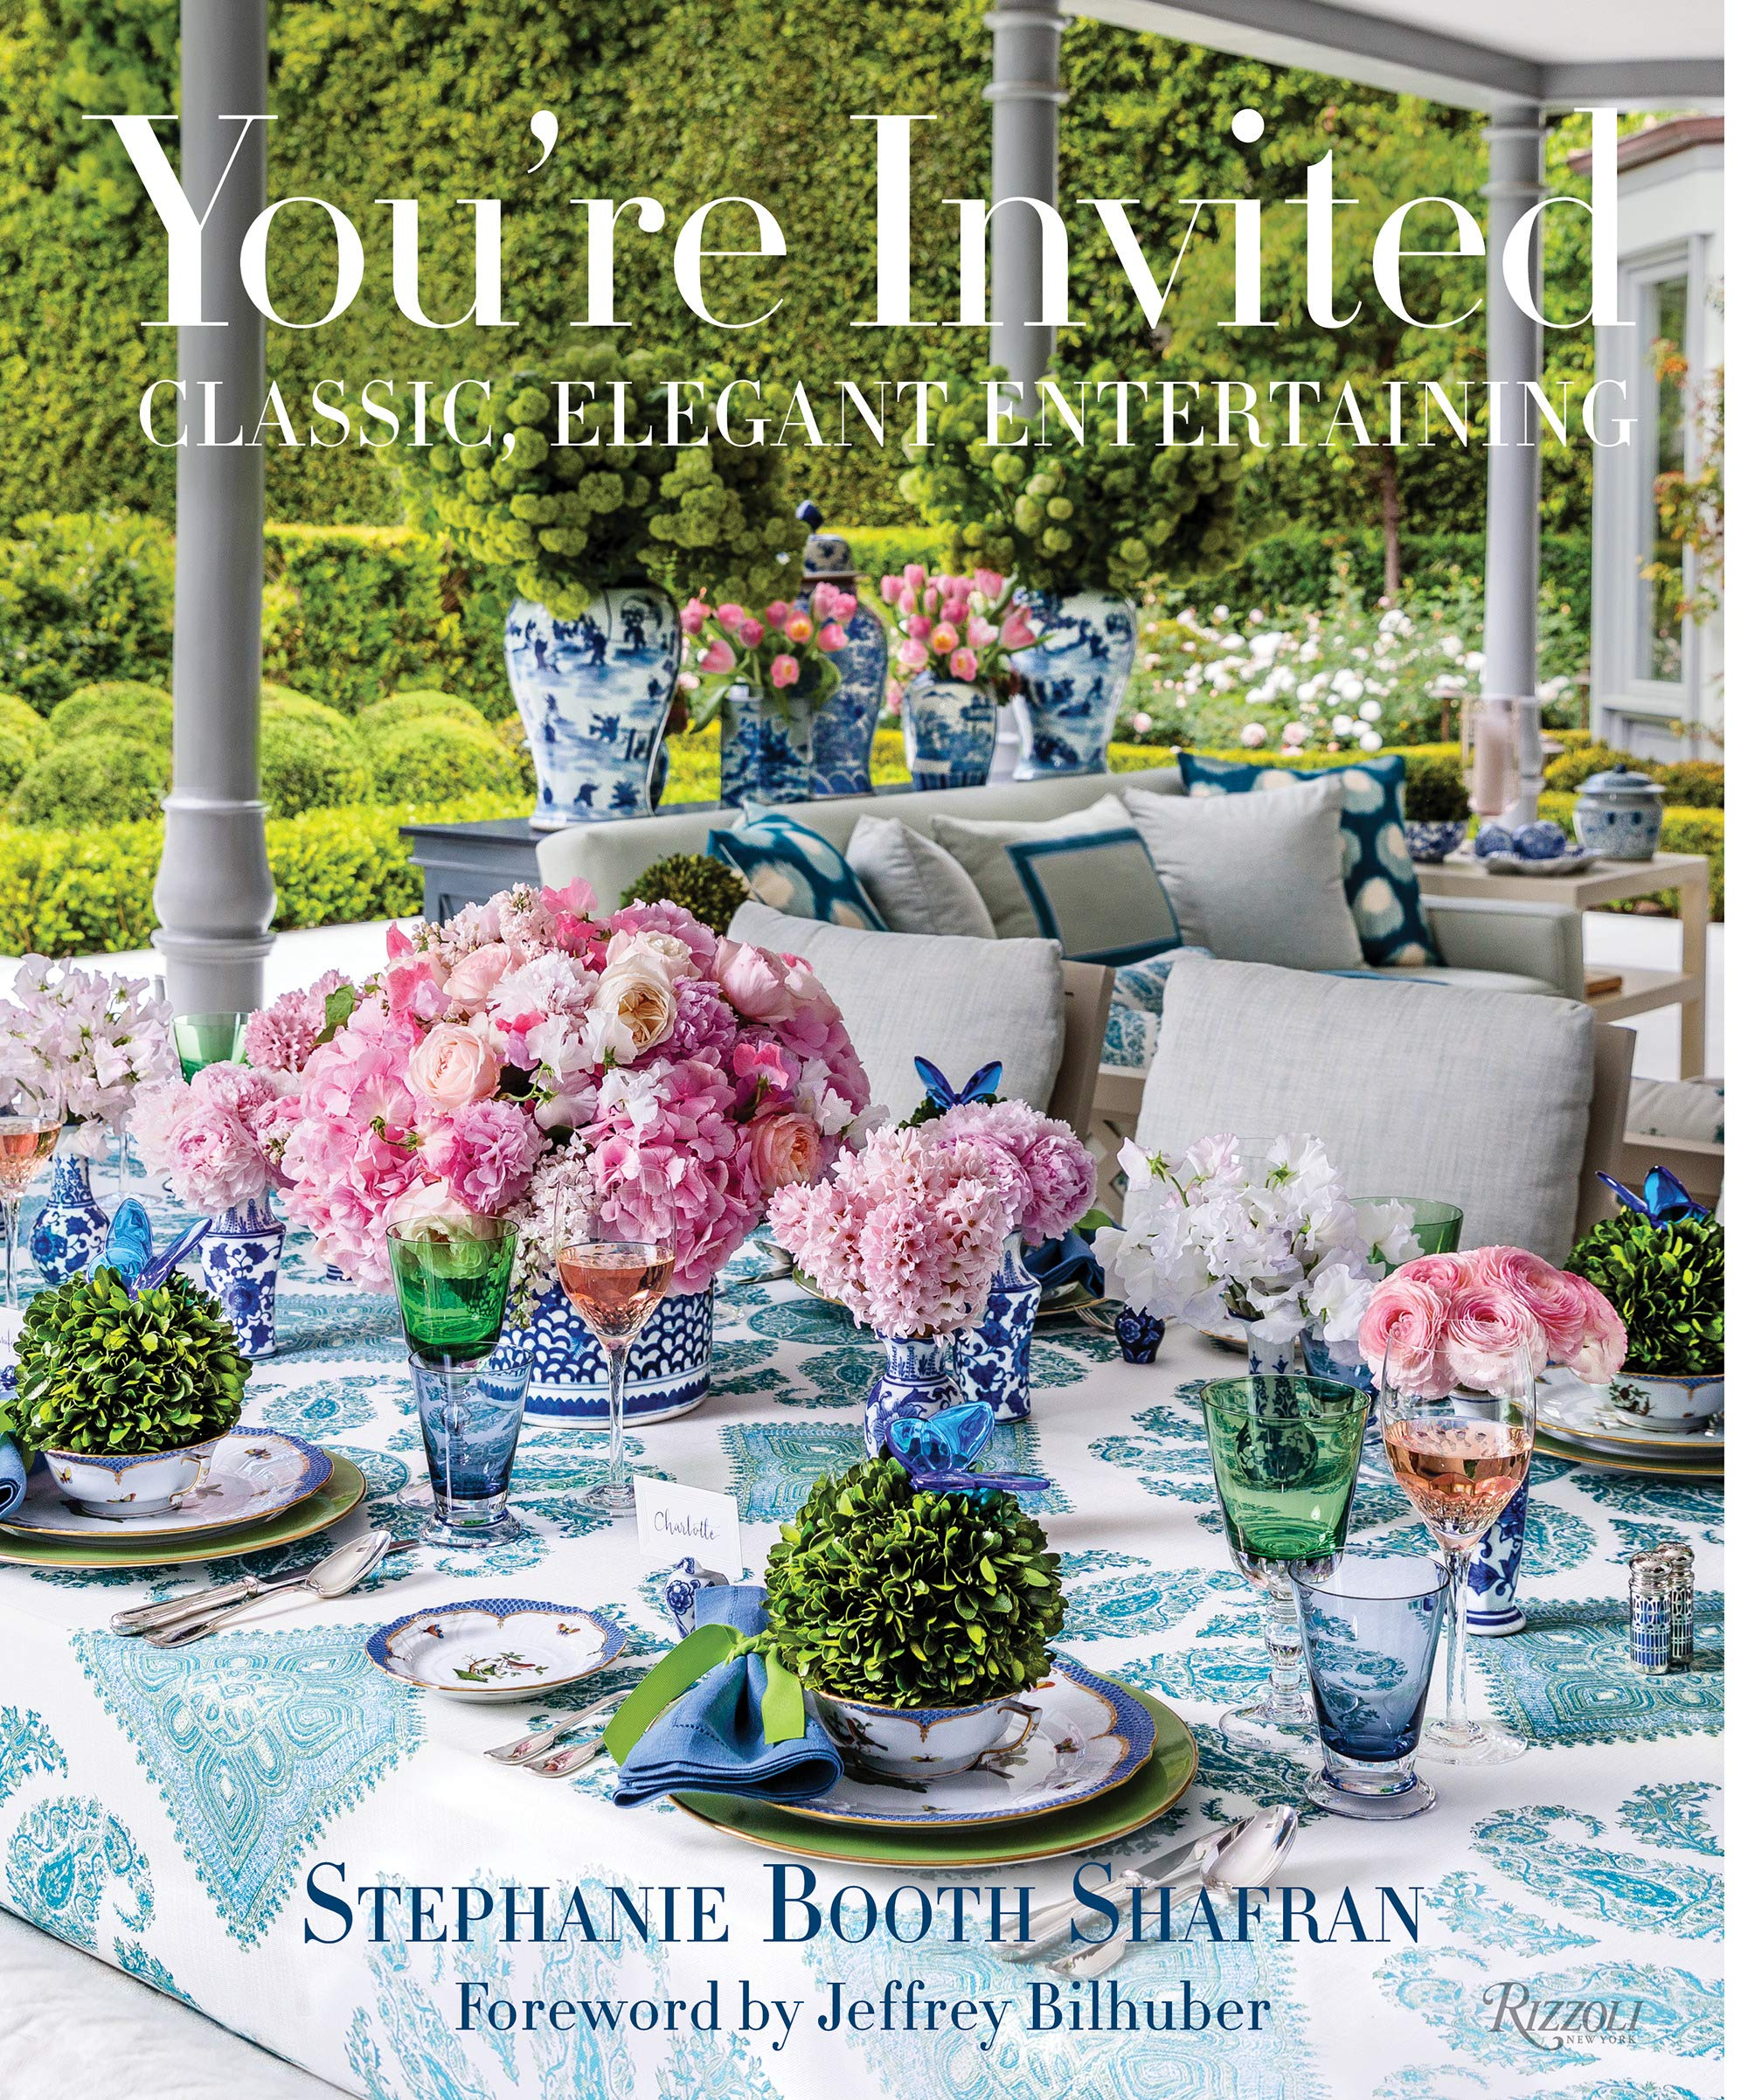 Book - You're Invited: Classic, Elegant, Entertaining